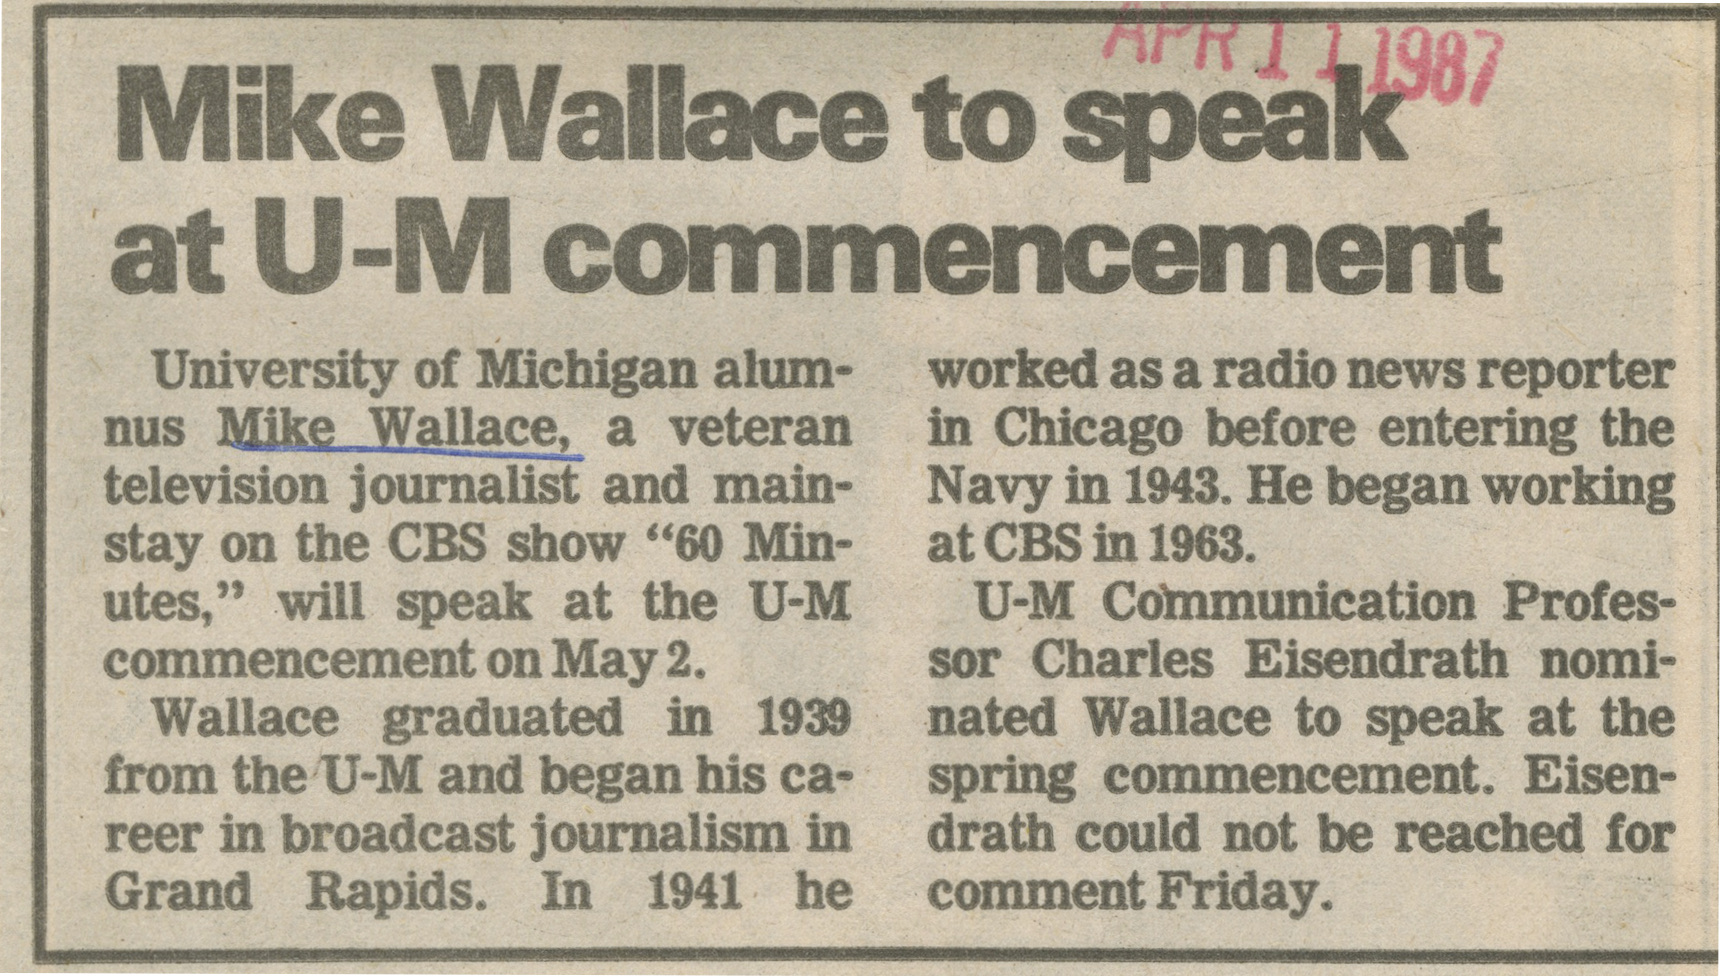 Mike Wallace To Speak At U-M Commencement image